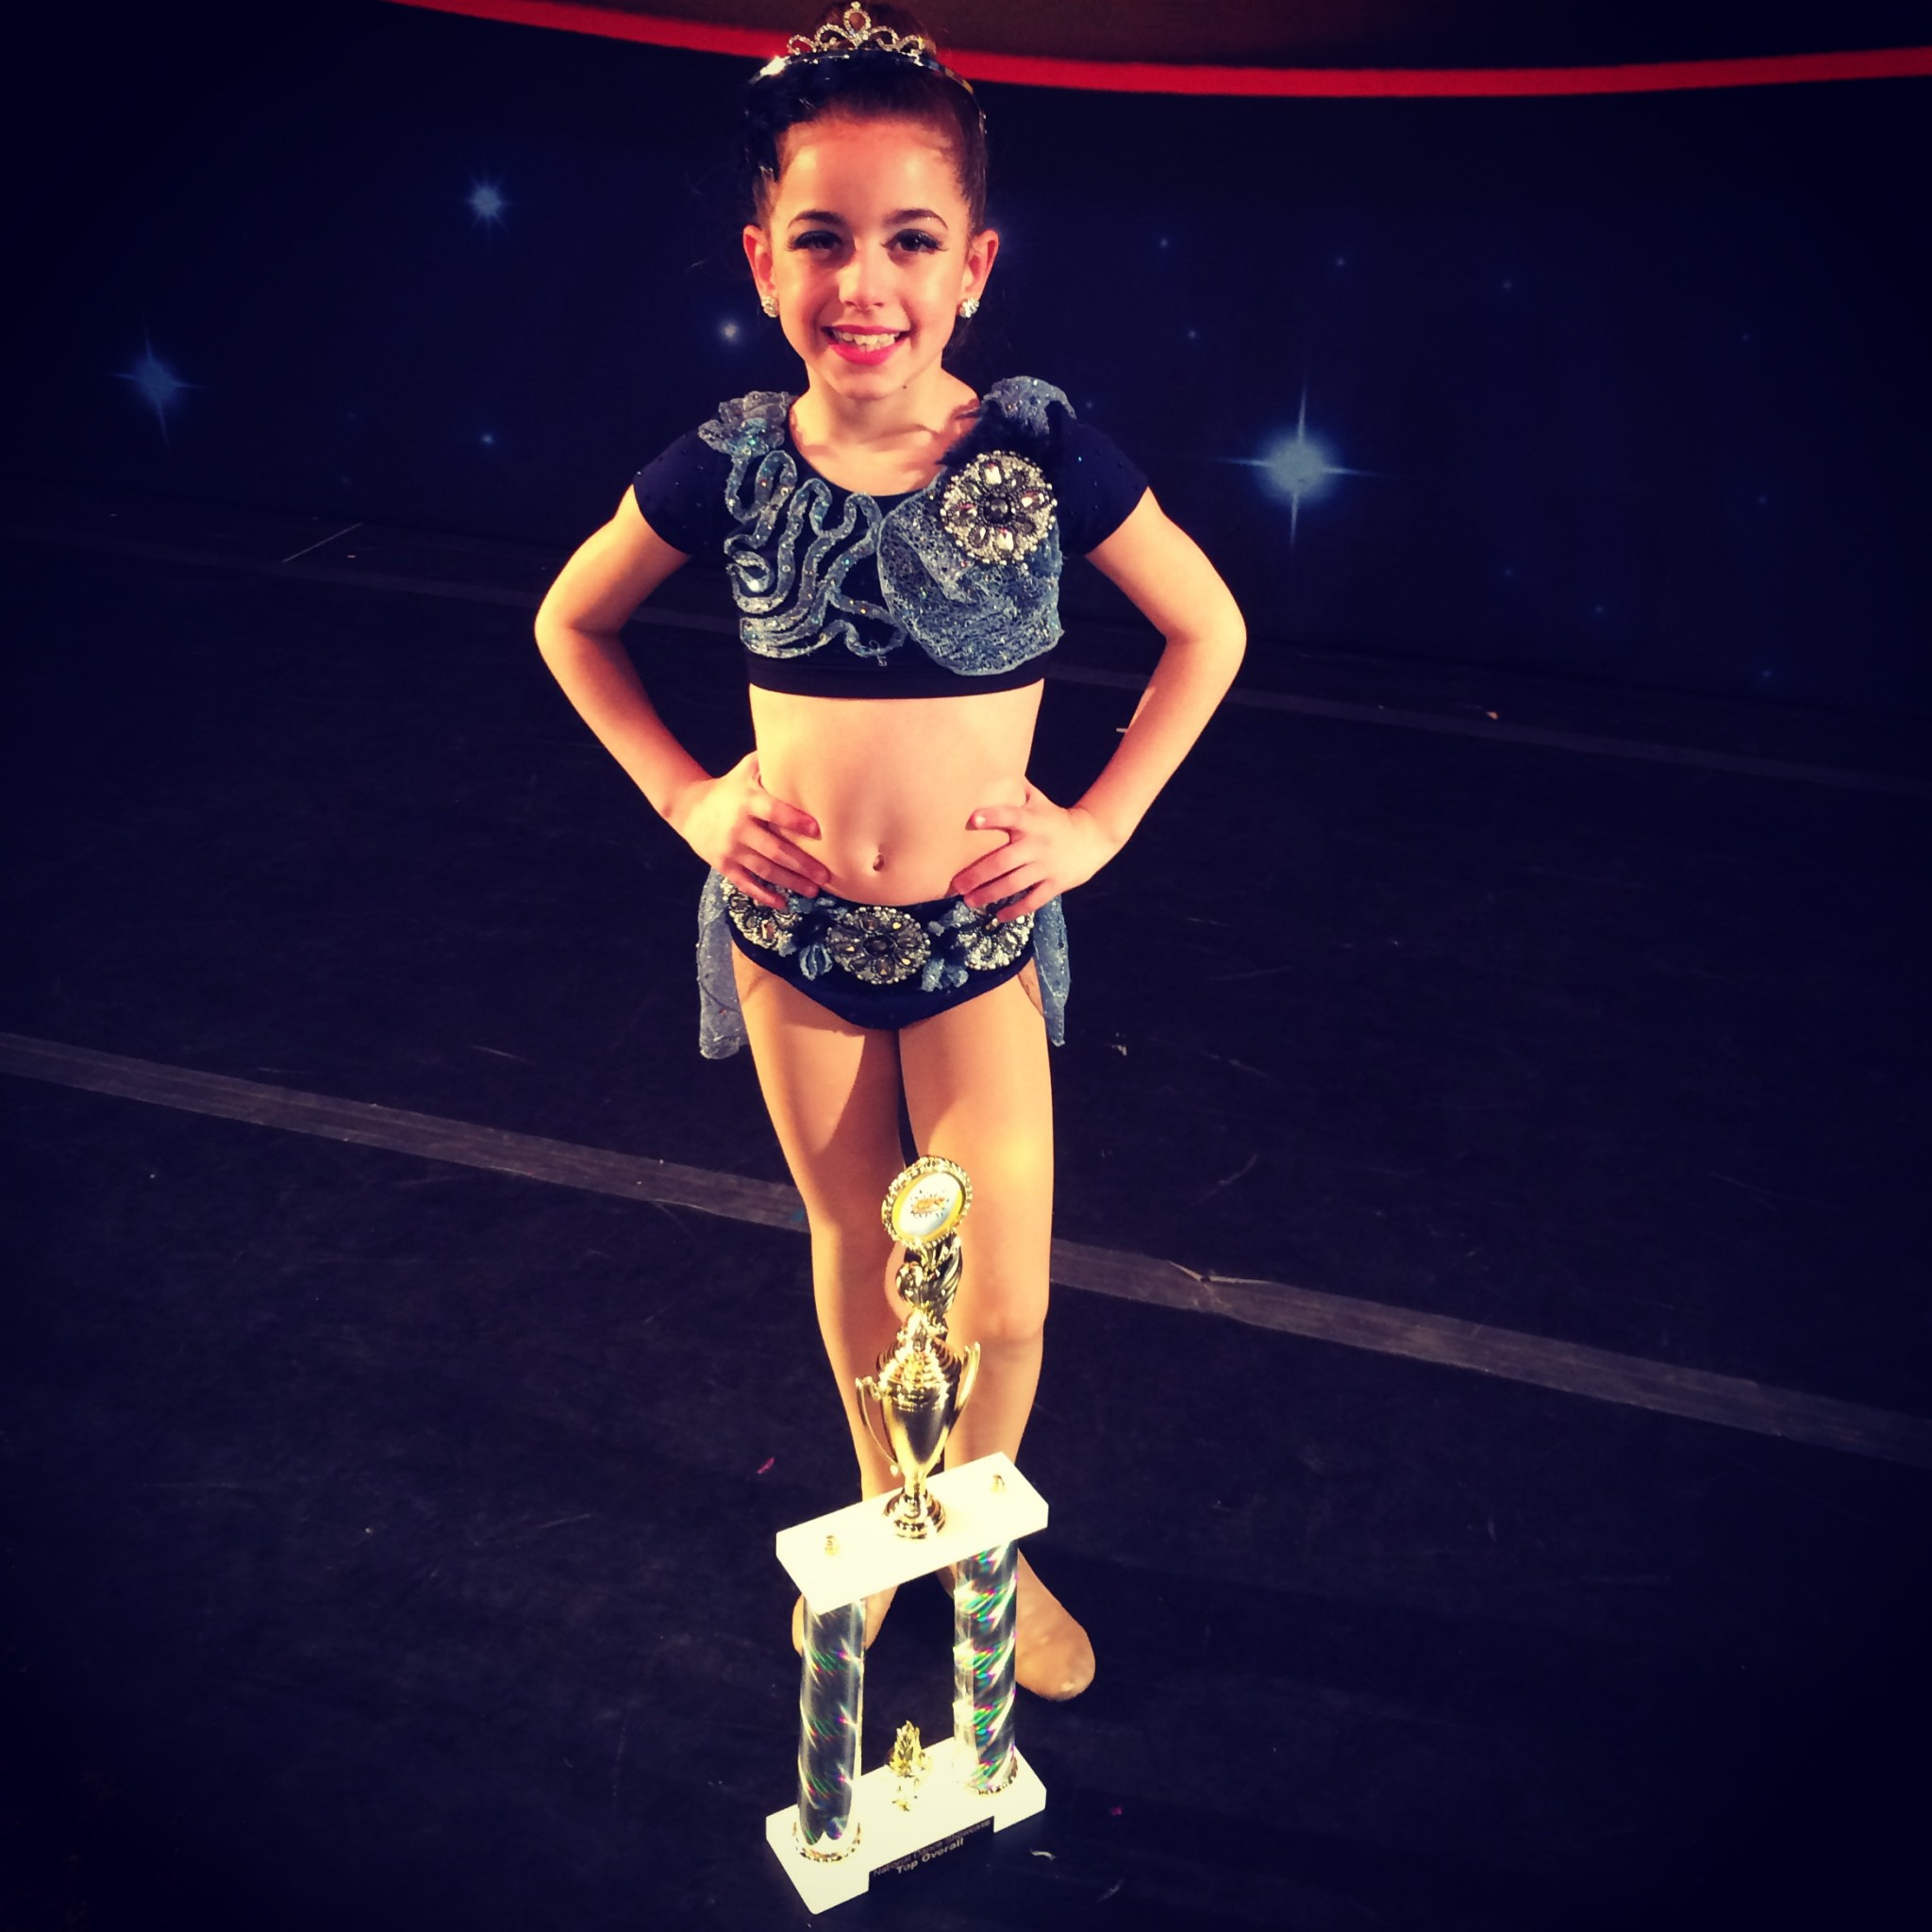 GiaNina-standing-with-her-2014-Miss-Petitte-NDS-trophy-2048x2048.jpeg